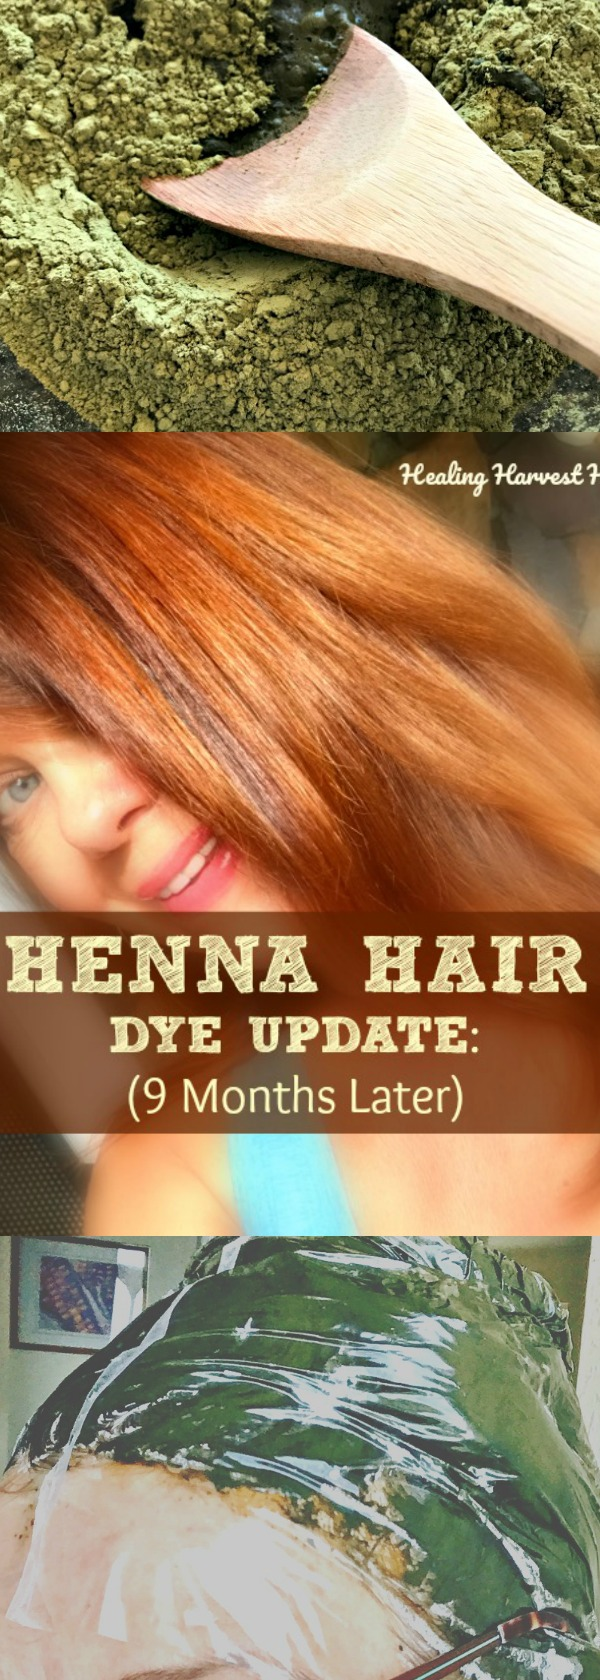 Tired of paying lots of $$$ for chemical hair dye appointments that just damage your hair? Henna may be the answer for you! Here are the things you need to know about using henna as a hair dye: What is henna? Are there any negative side effects to using henna in your hair? What are the benefits of using henna? How do you dye your hair with henna? After nine months of using henna in my hair, here are my findings on using henna as a hair dye!